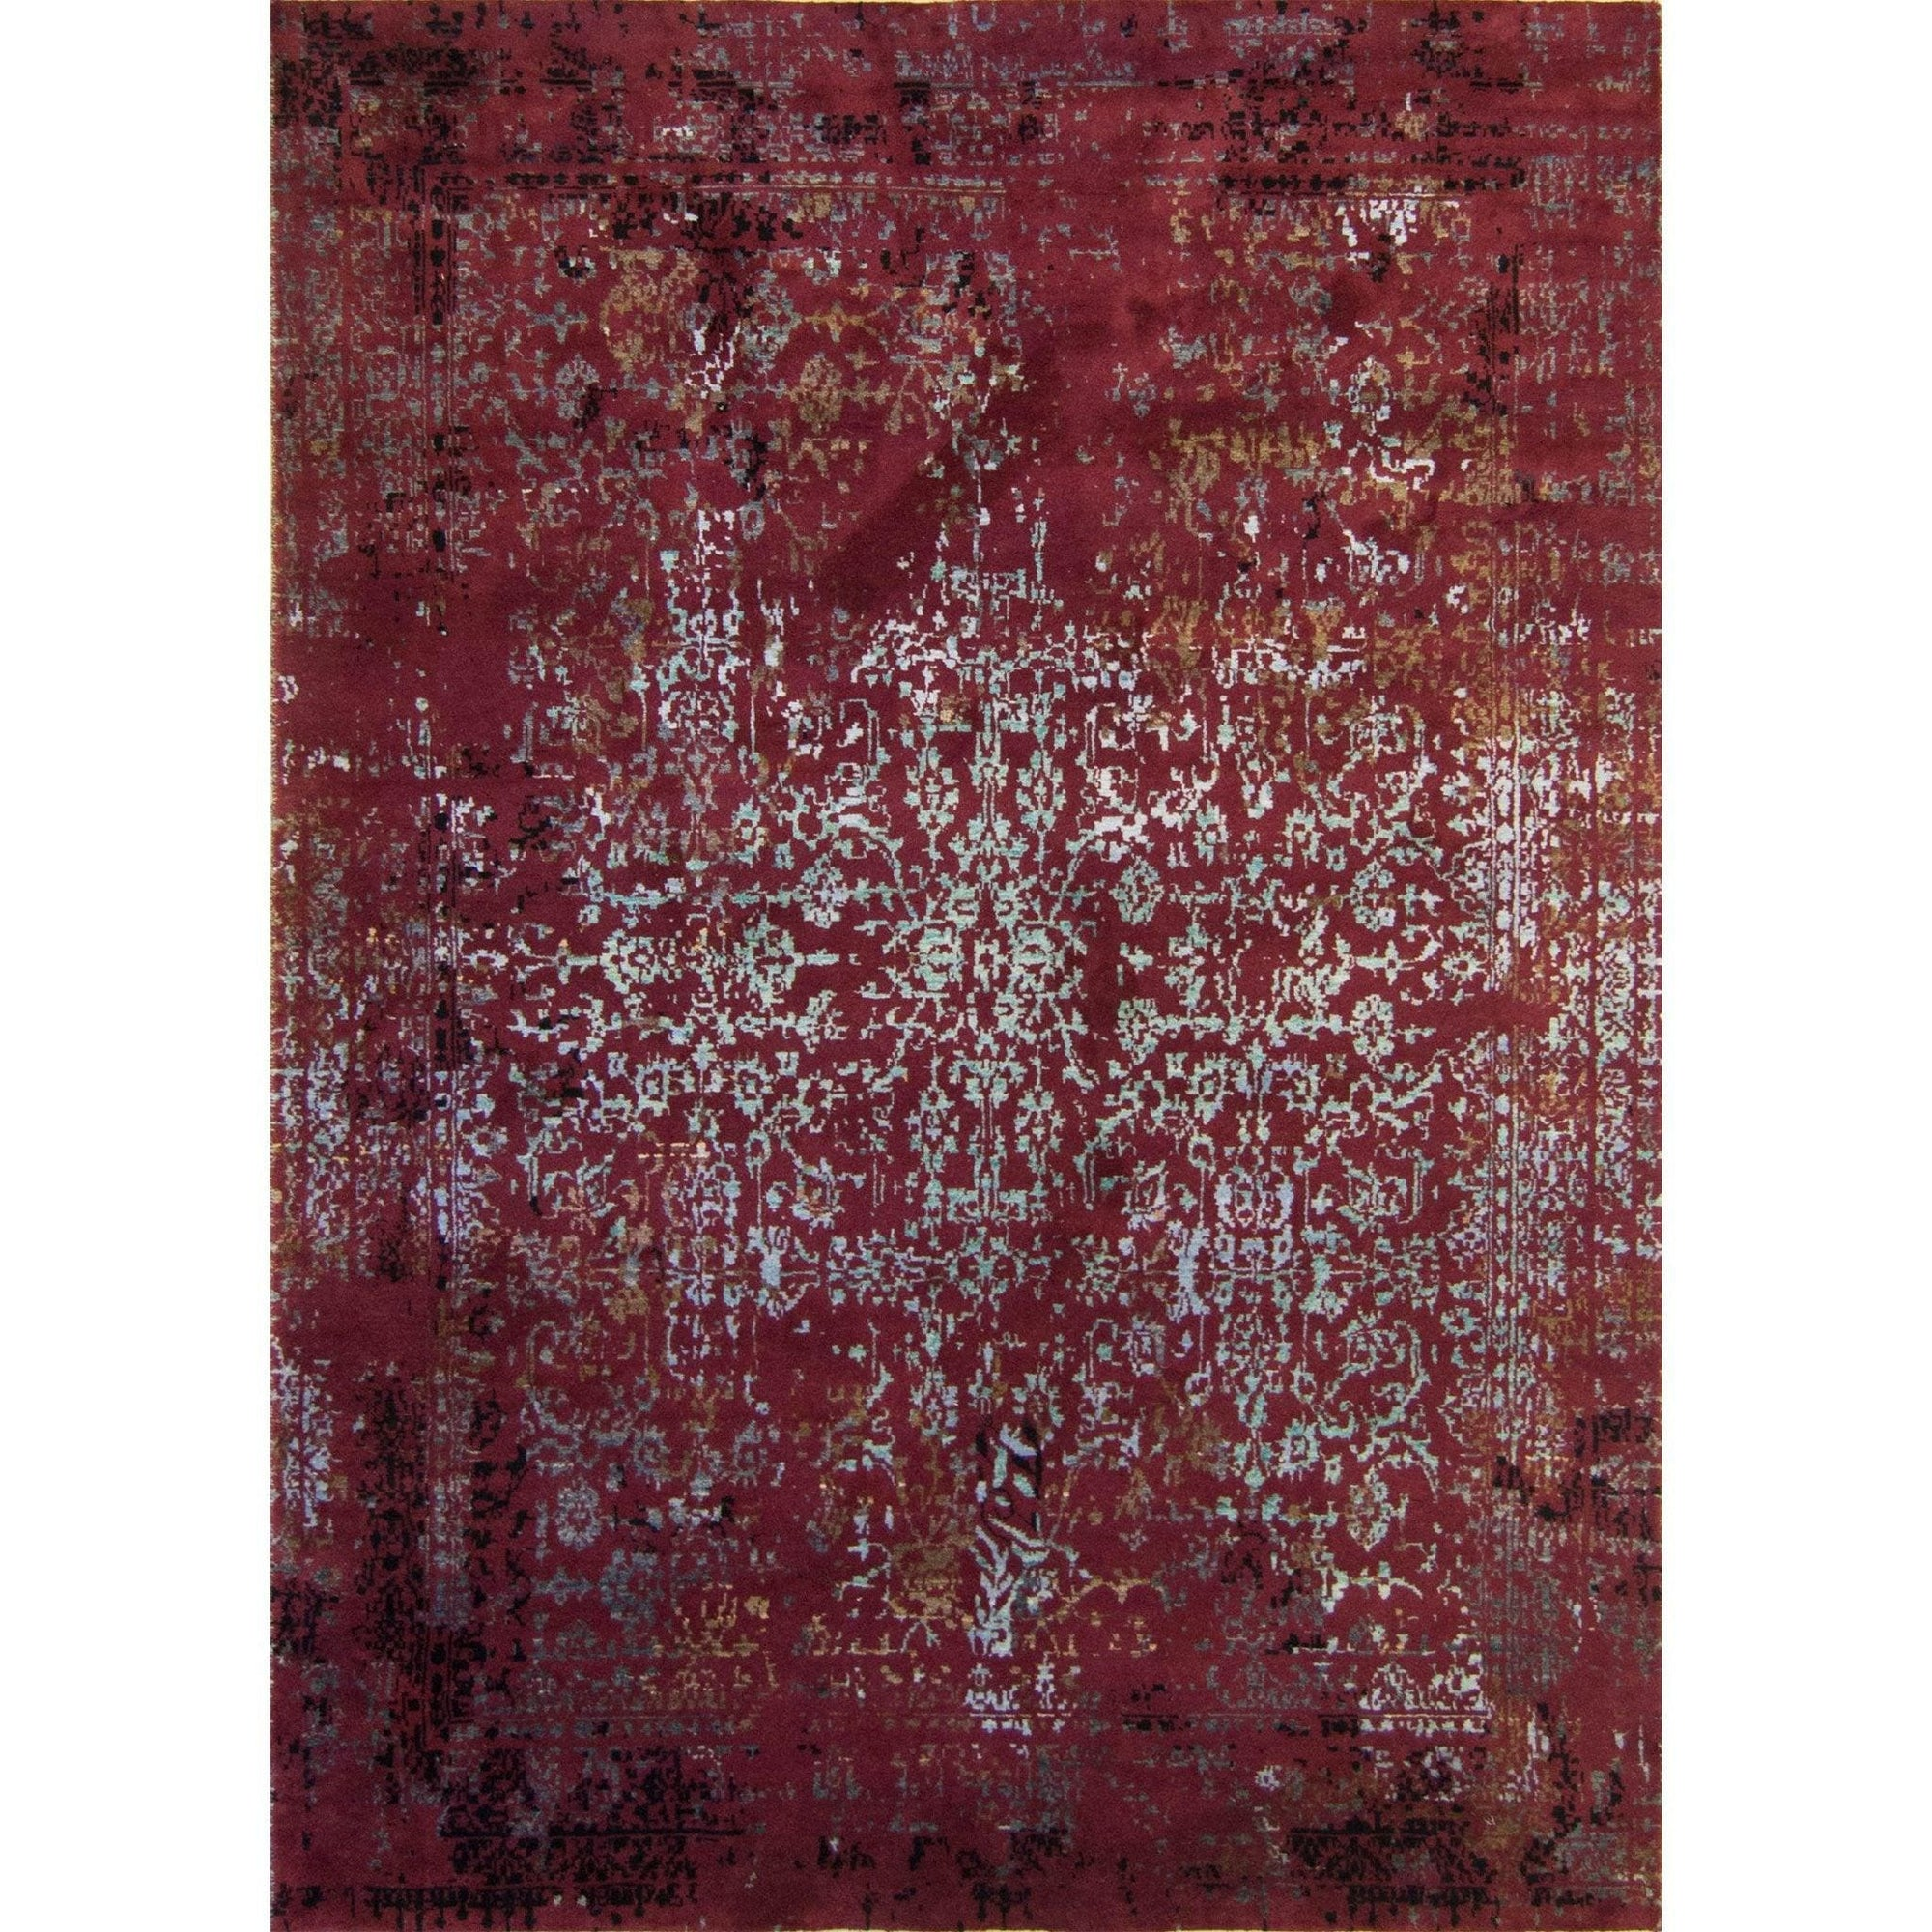 Fine Hand-knotted Modern Wool and Silk Galaxy Rug 157cm x 223cm Persian-Rug | House-of-Haghi | NewMarket | Auckland | NZ | Handmade Persian Rugs | Hand Knotted Persian Rugs